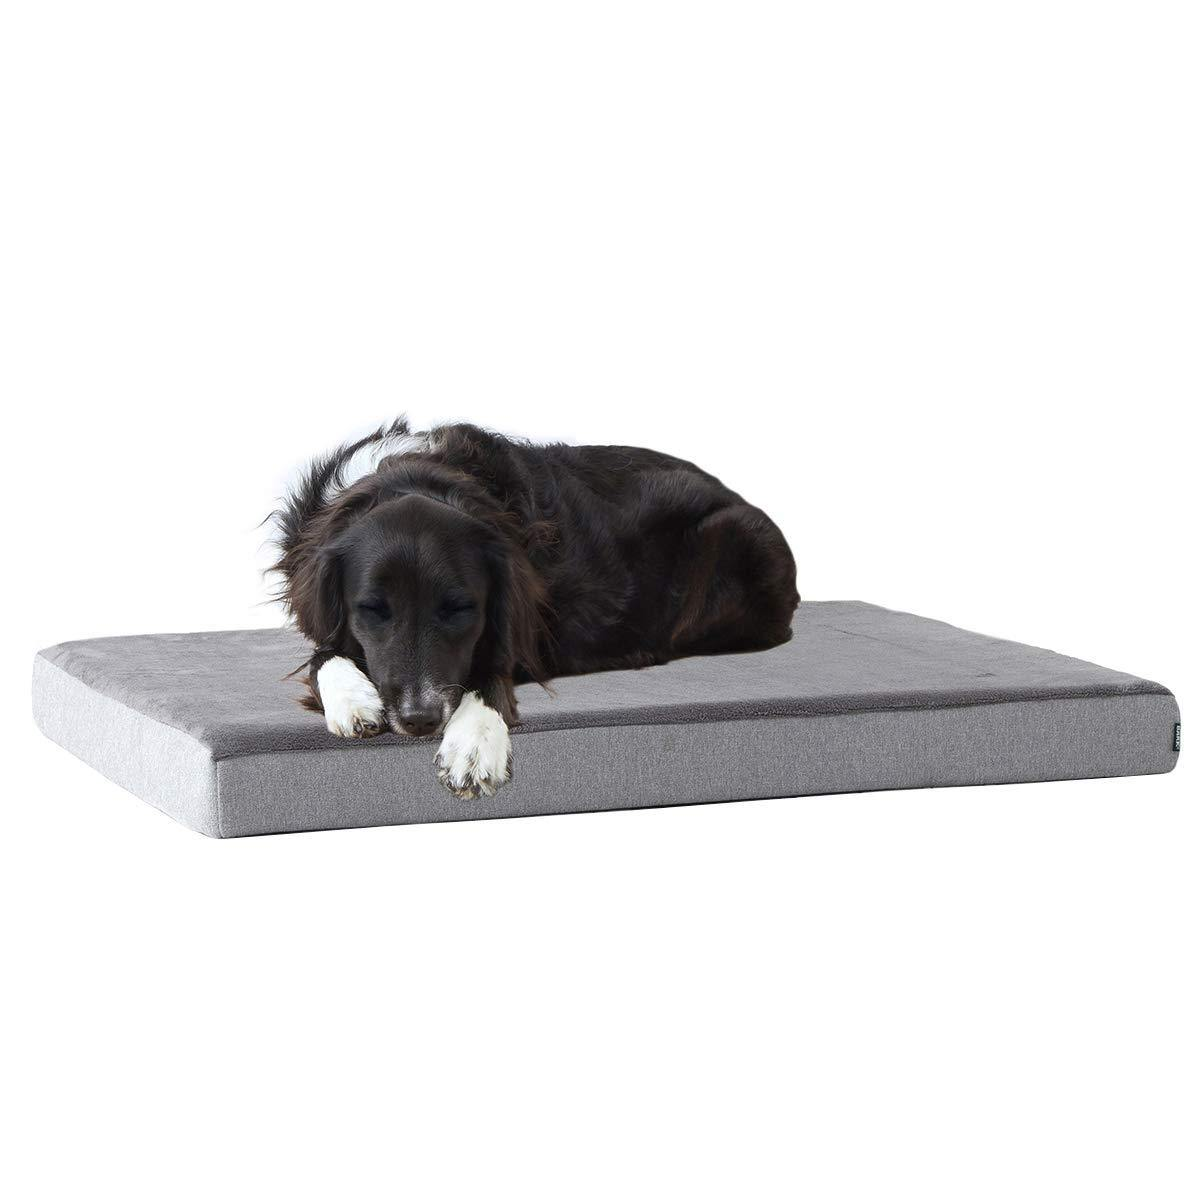 Milemont Memory Foam, Platform Dog Bed, Plush Mattress, Orthopedic Joint Relief, Cuddler with Removable Cover and Water-Resistant Lining